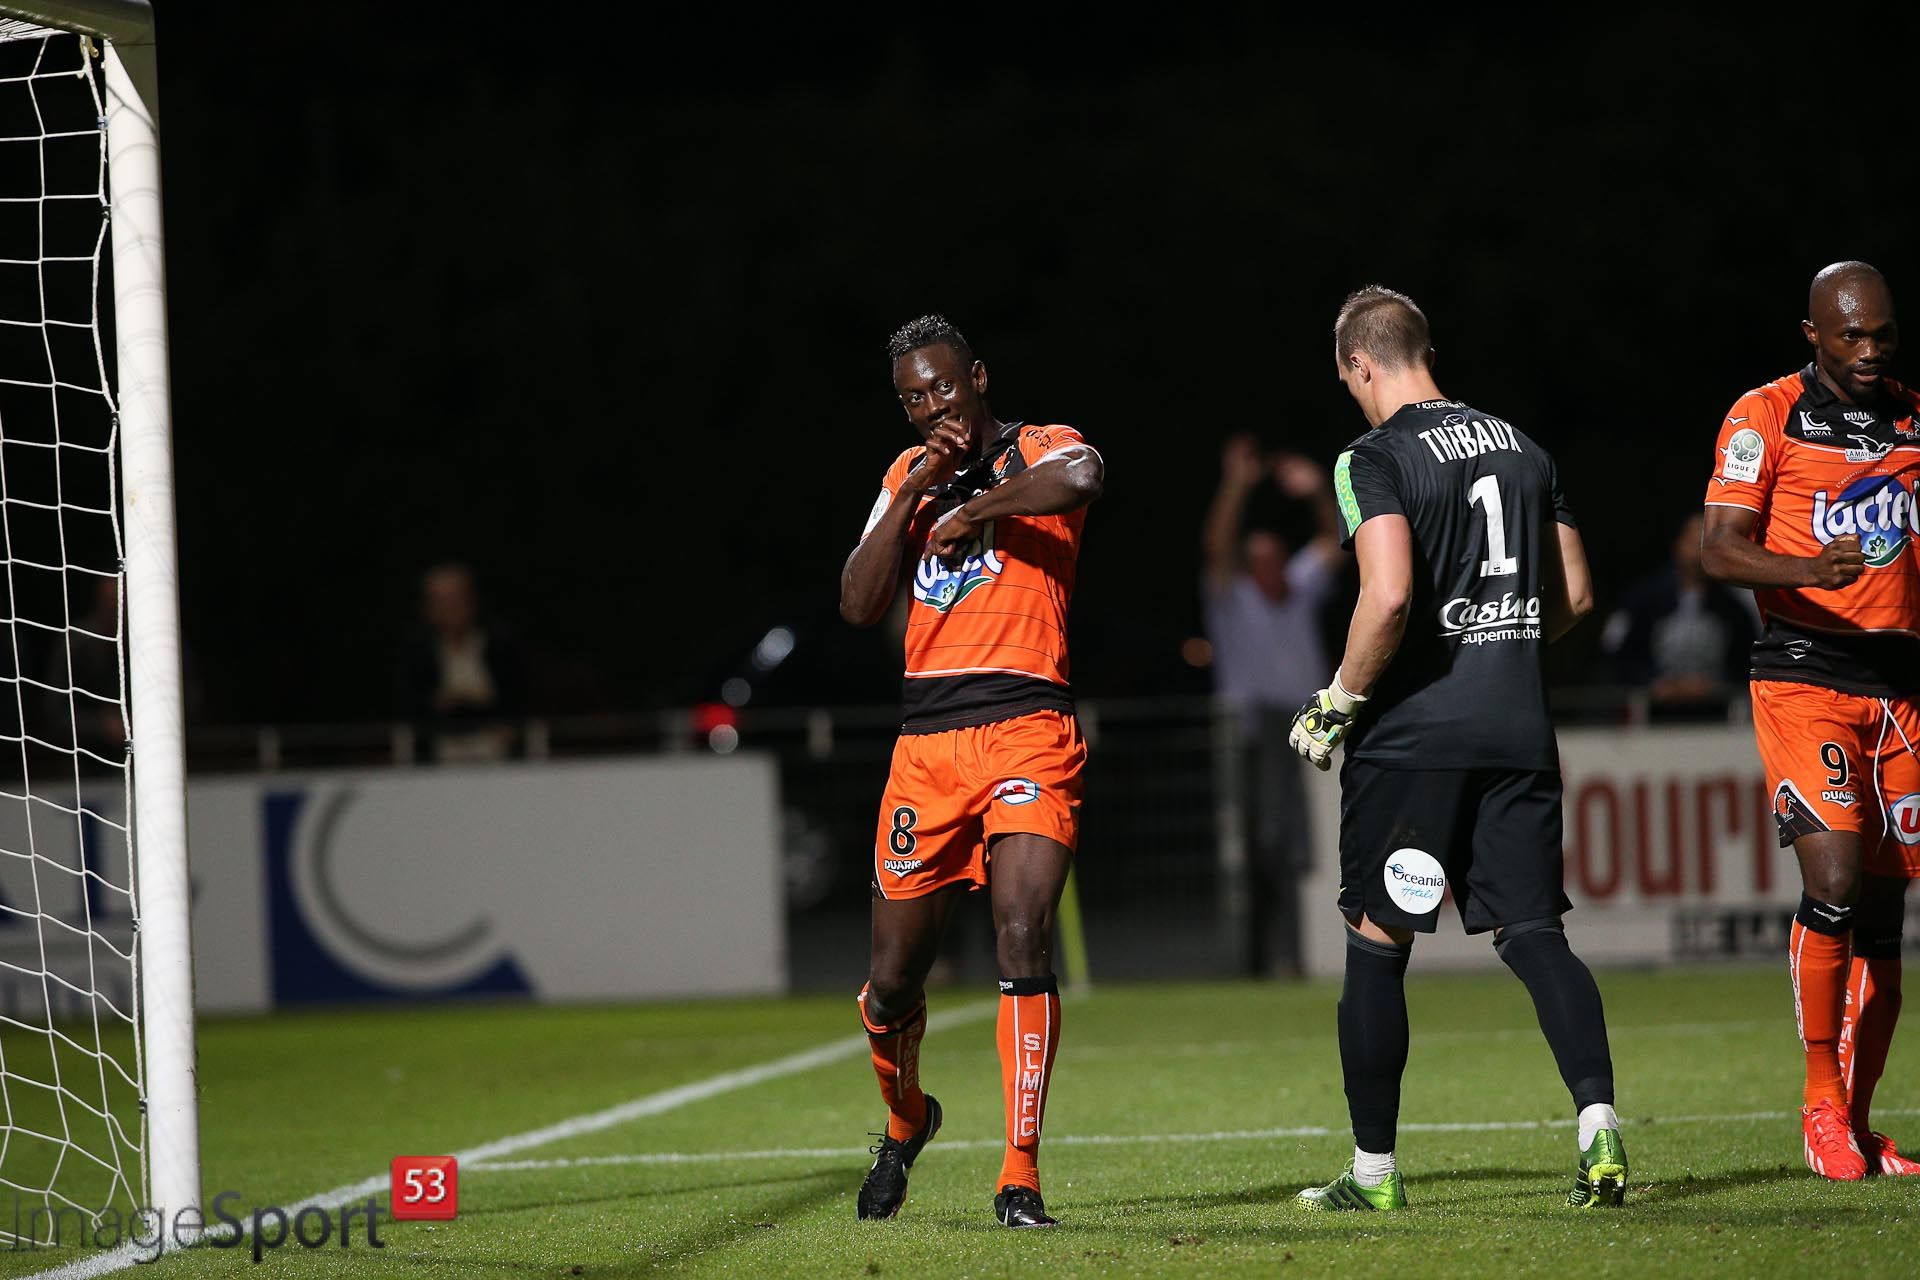 NG_1314_Ligue2_J06_Laval-Angers_14